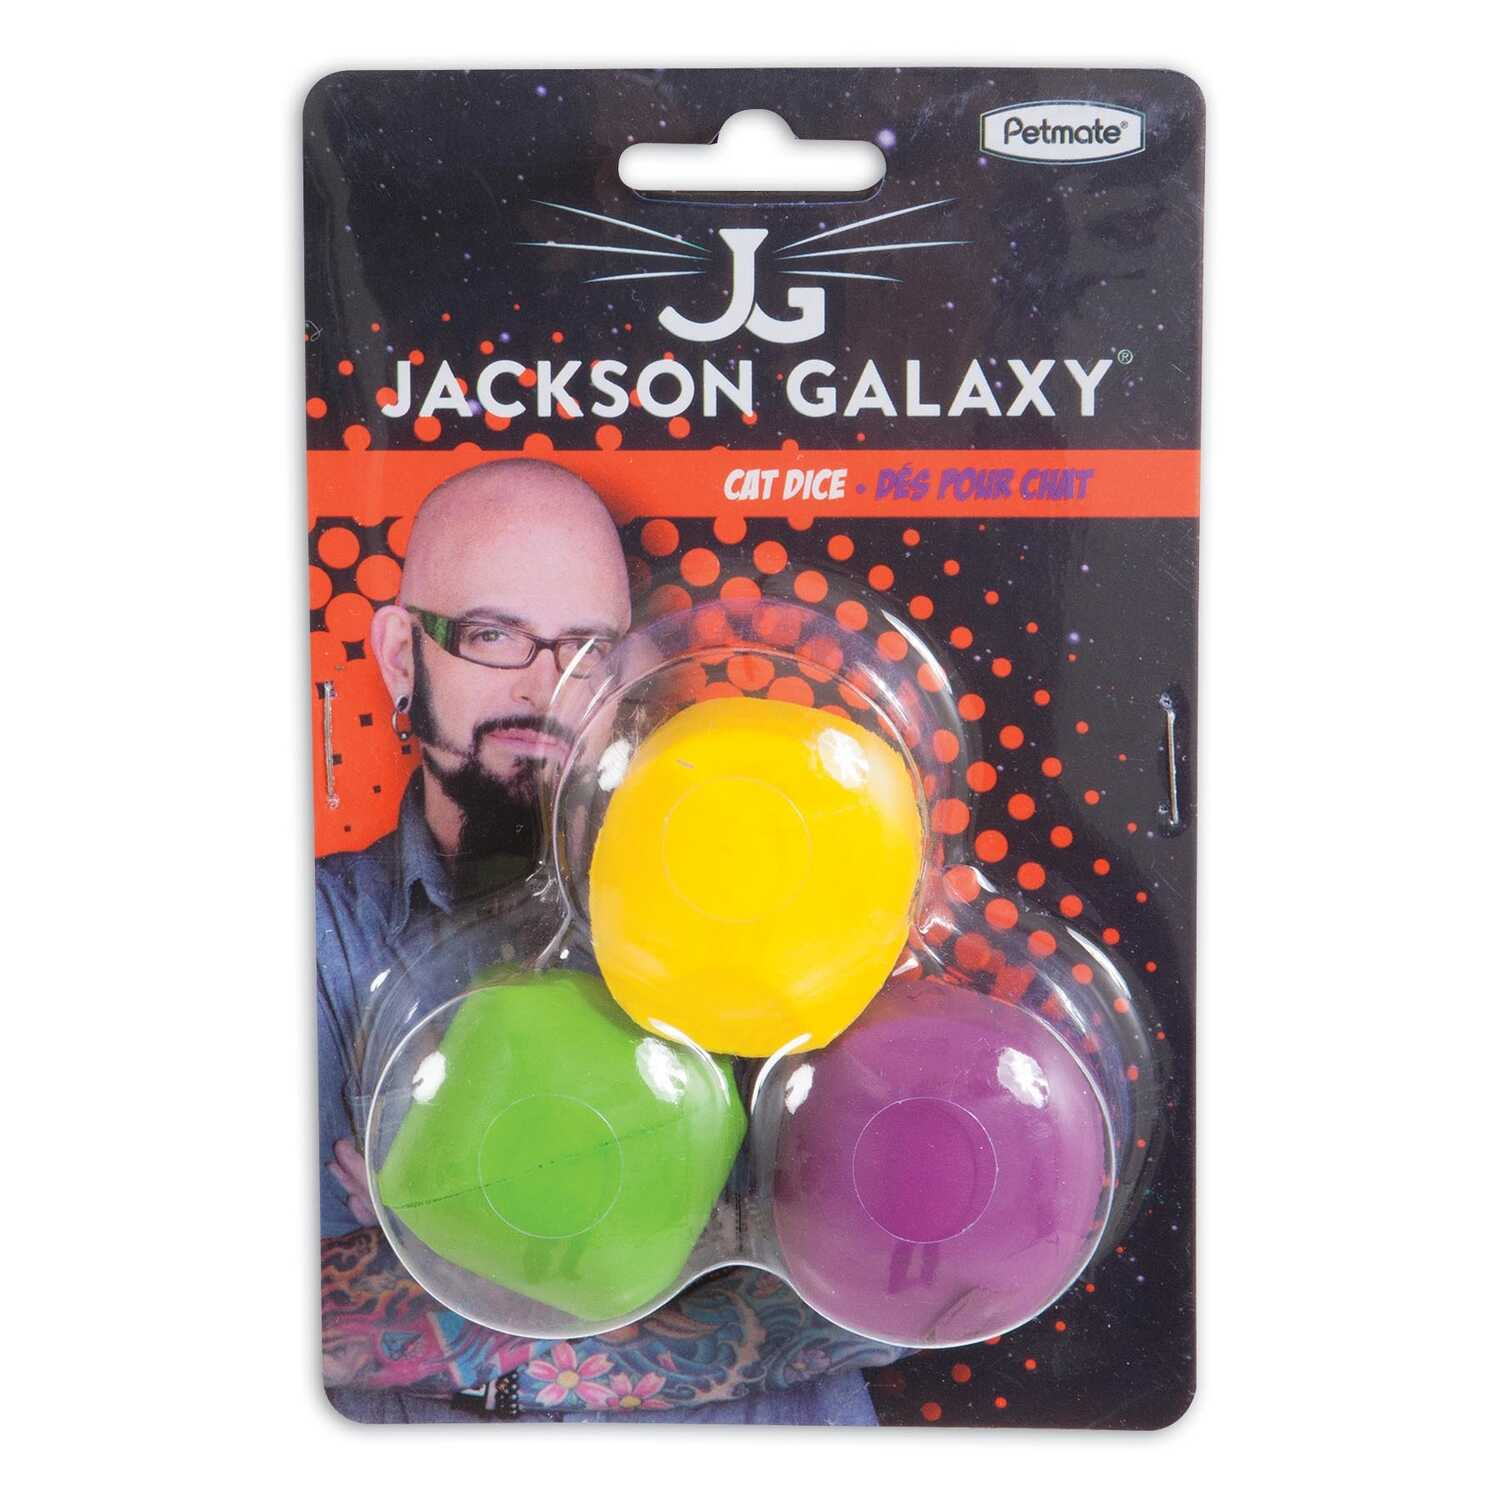 Jackson Galaxy  Assorted  Dice  Foam  Cat Toy  Small